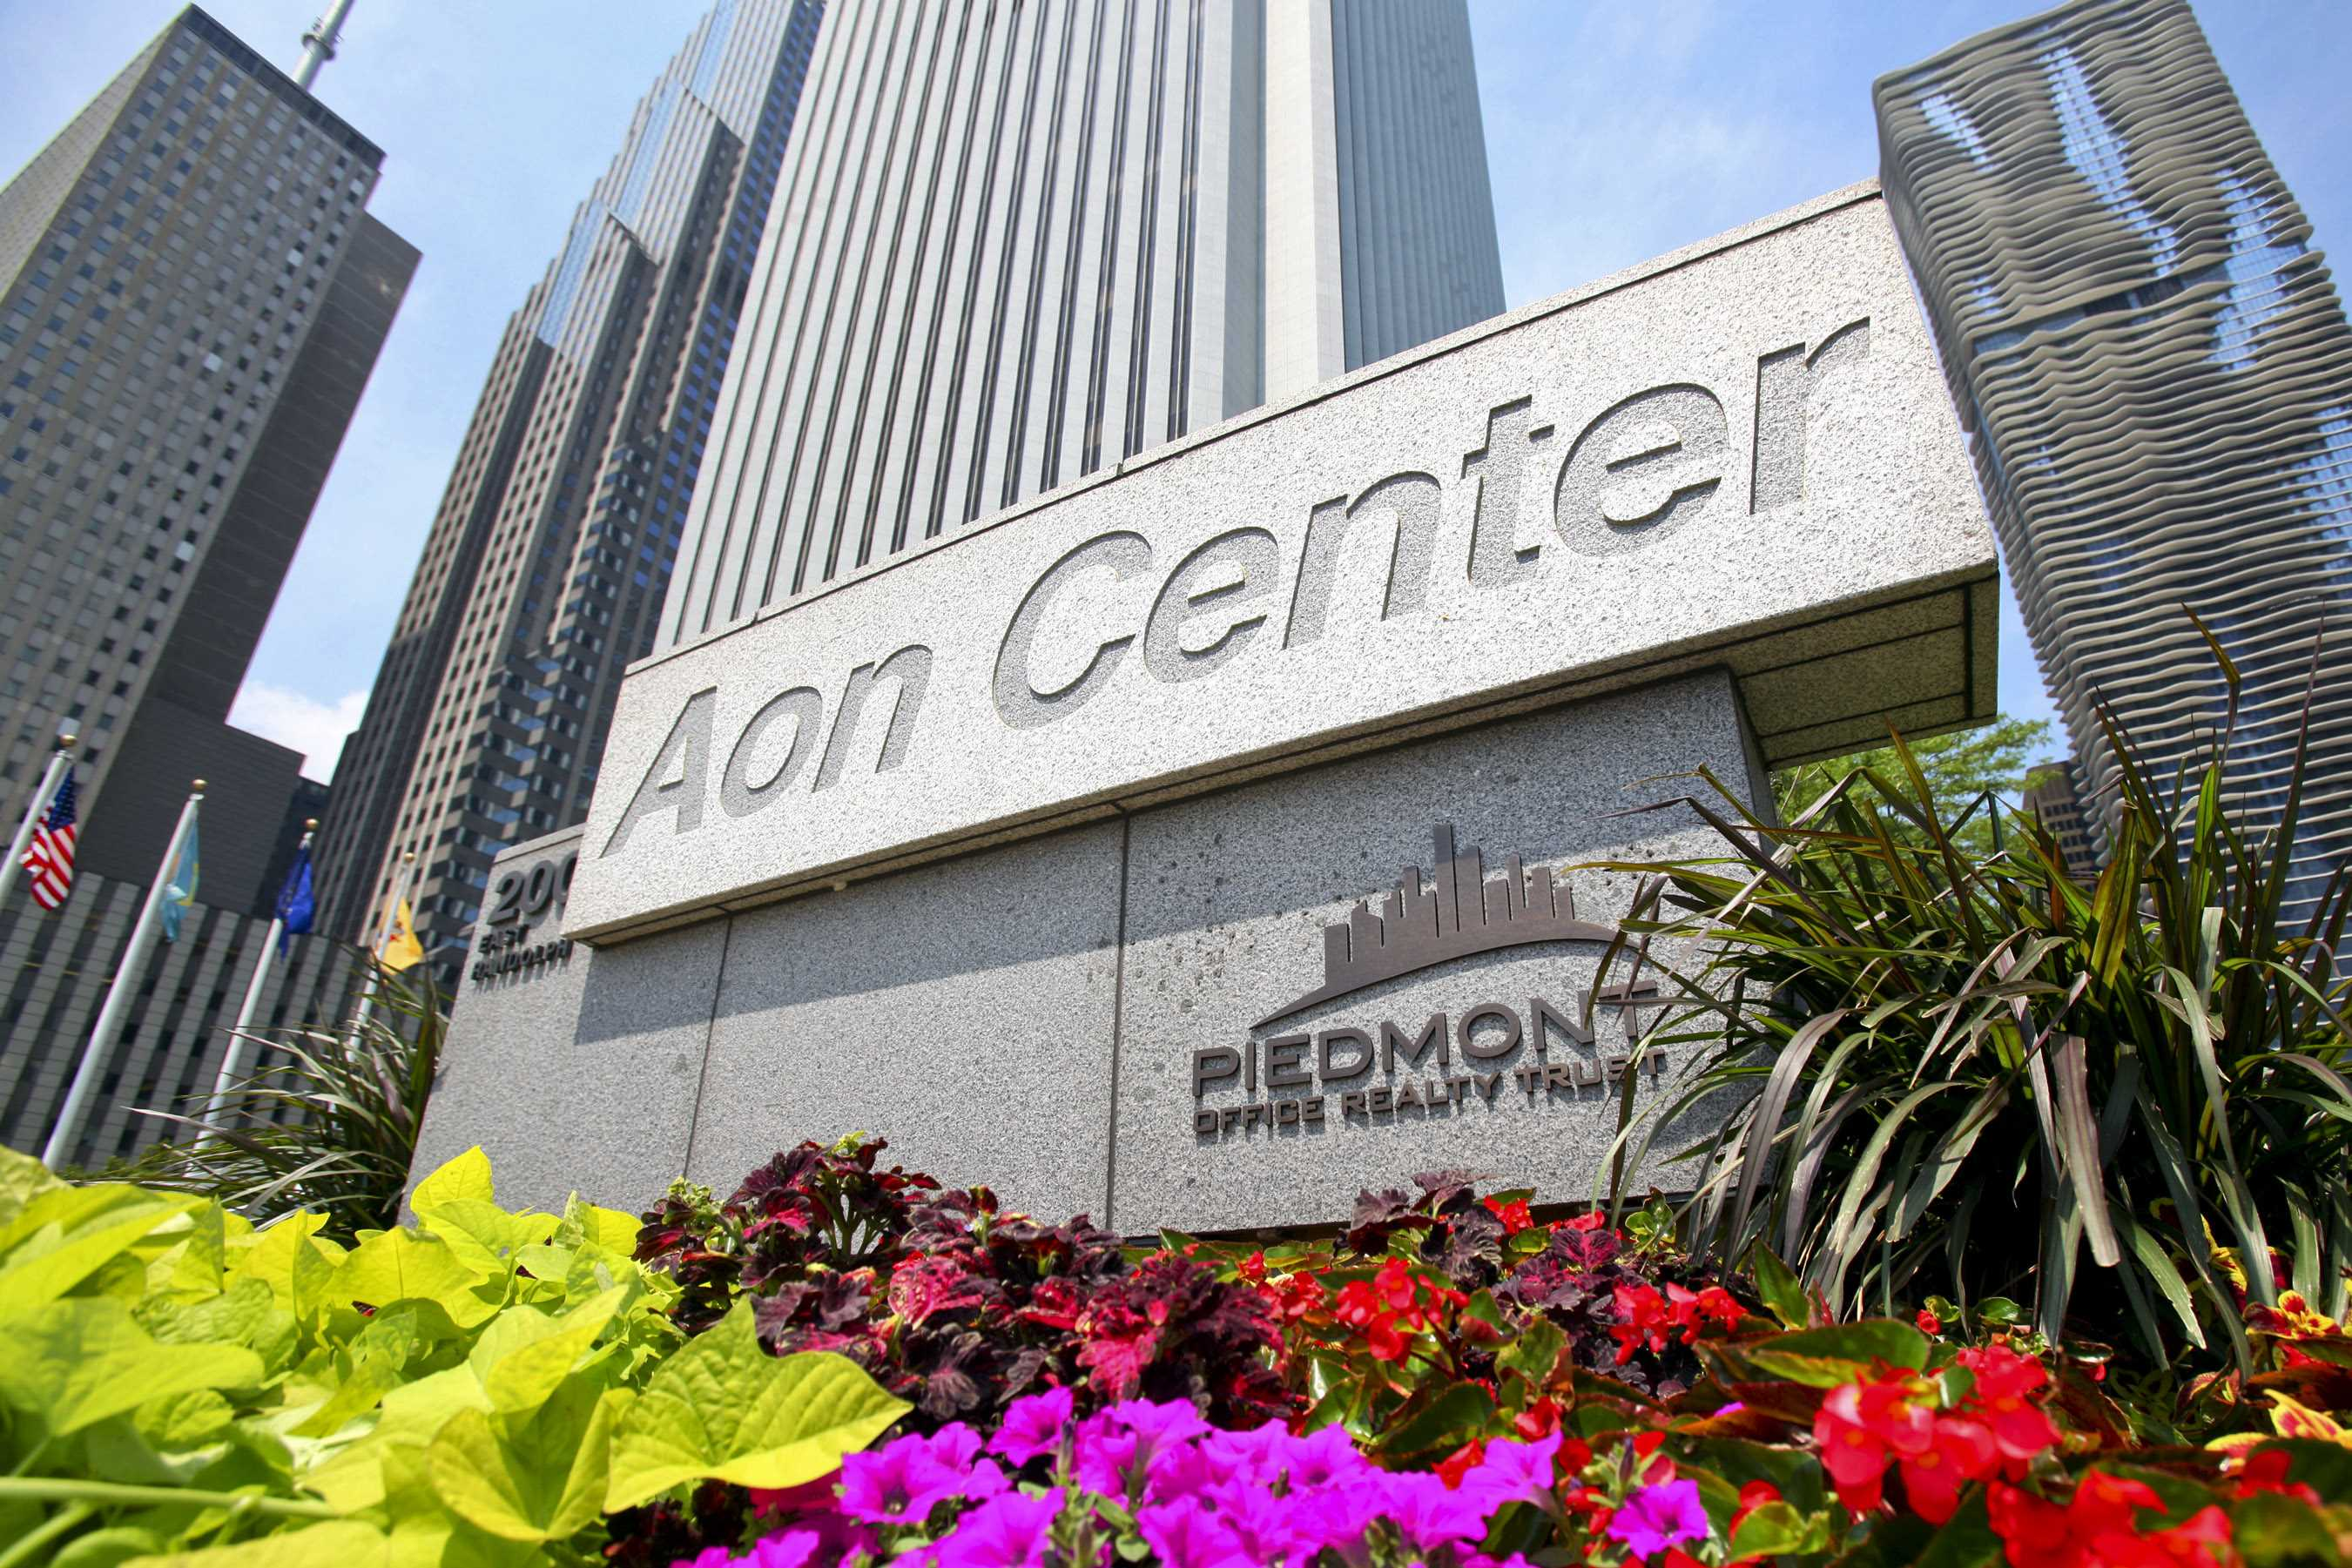 Aon settles allegations that it bribed foreign officials to get business